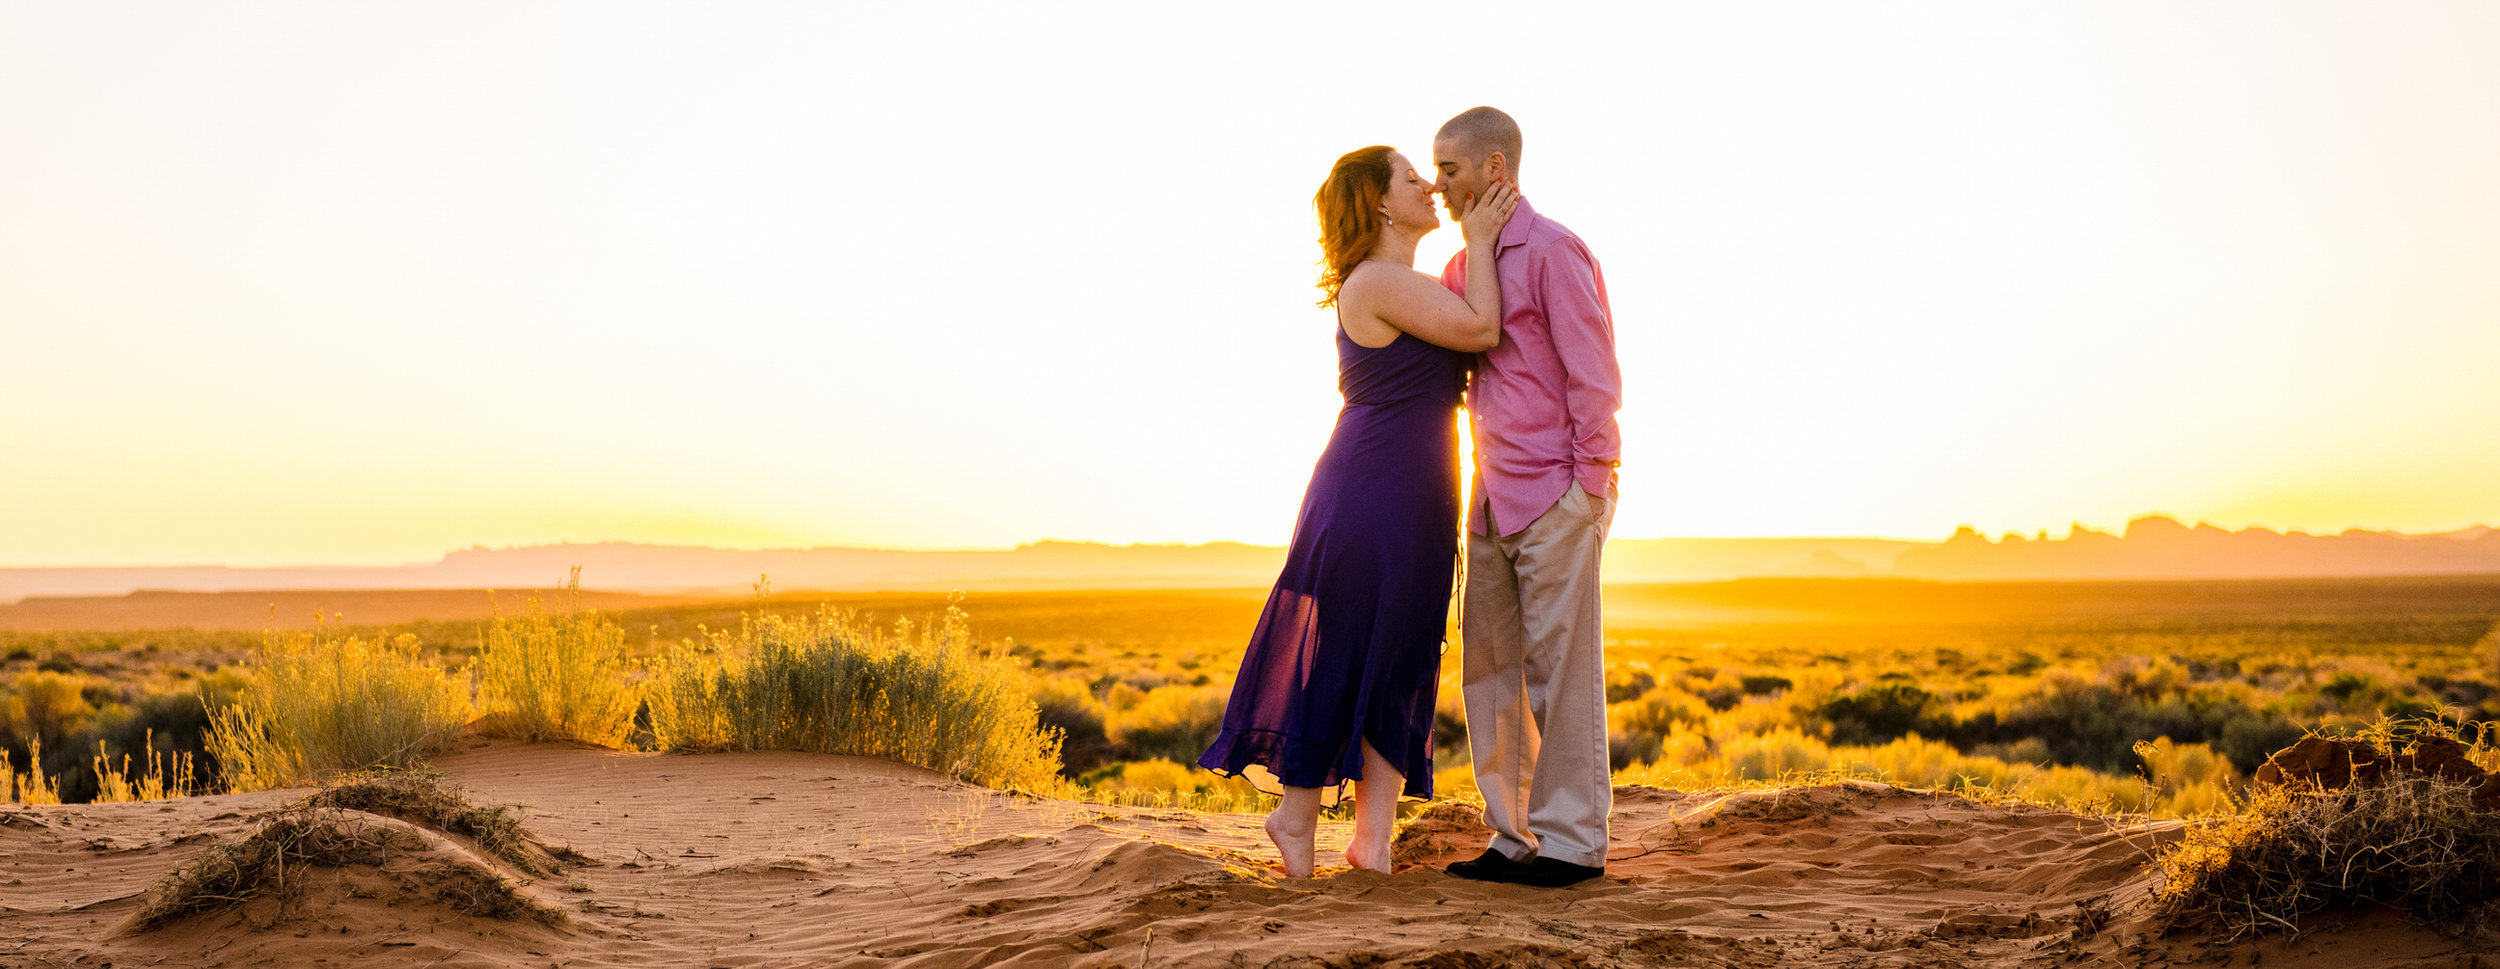 MonumentValleyEngagement-Alicia&Rob-1461.jpg